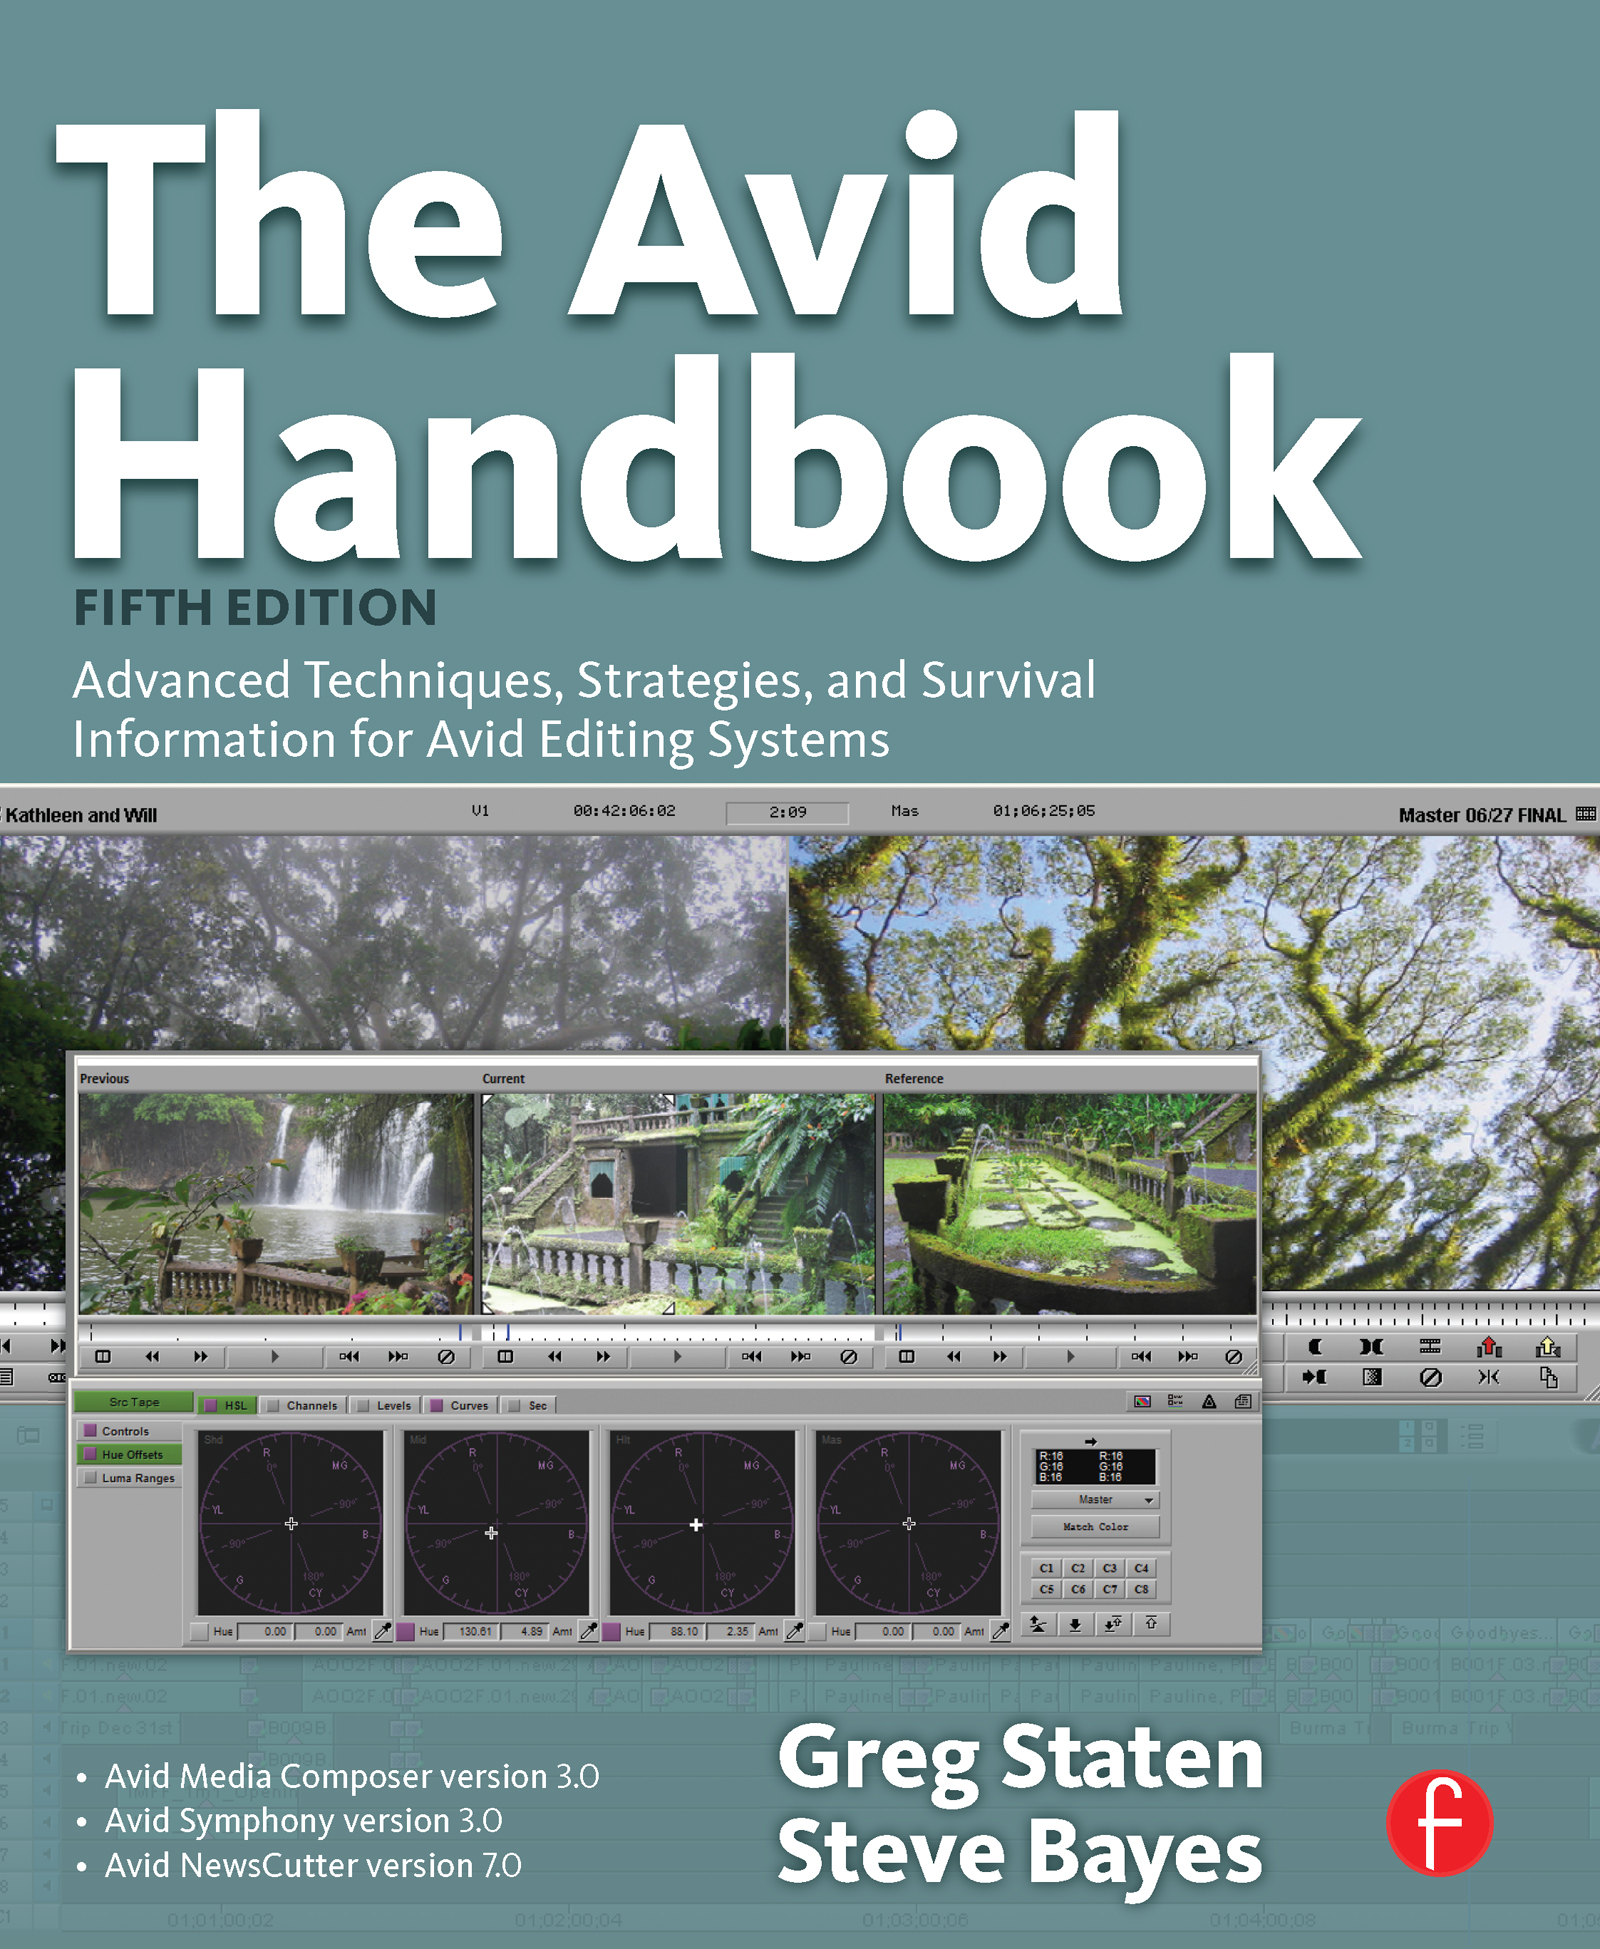 The Avid Handbook: Advanced Techniques, Strategies, and Survival Information for Avid Editing Systems book cover